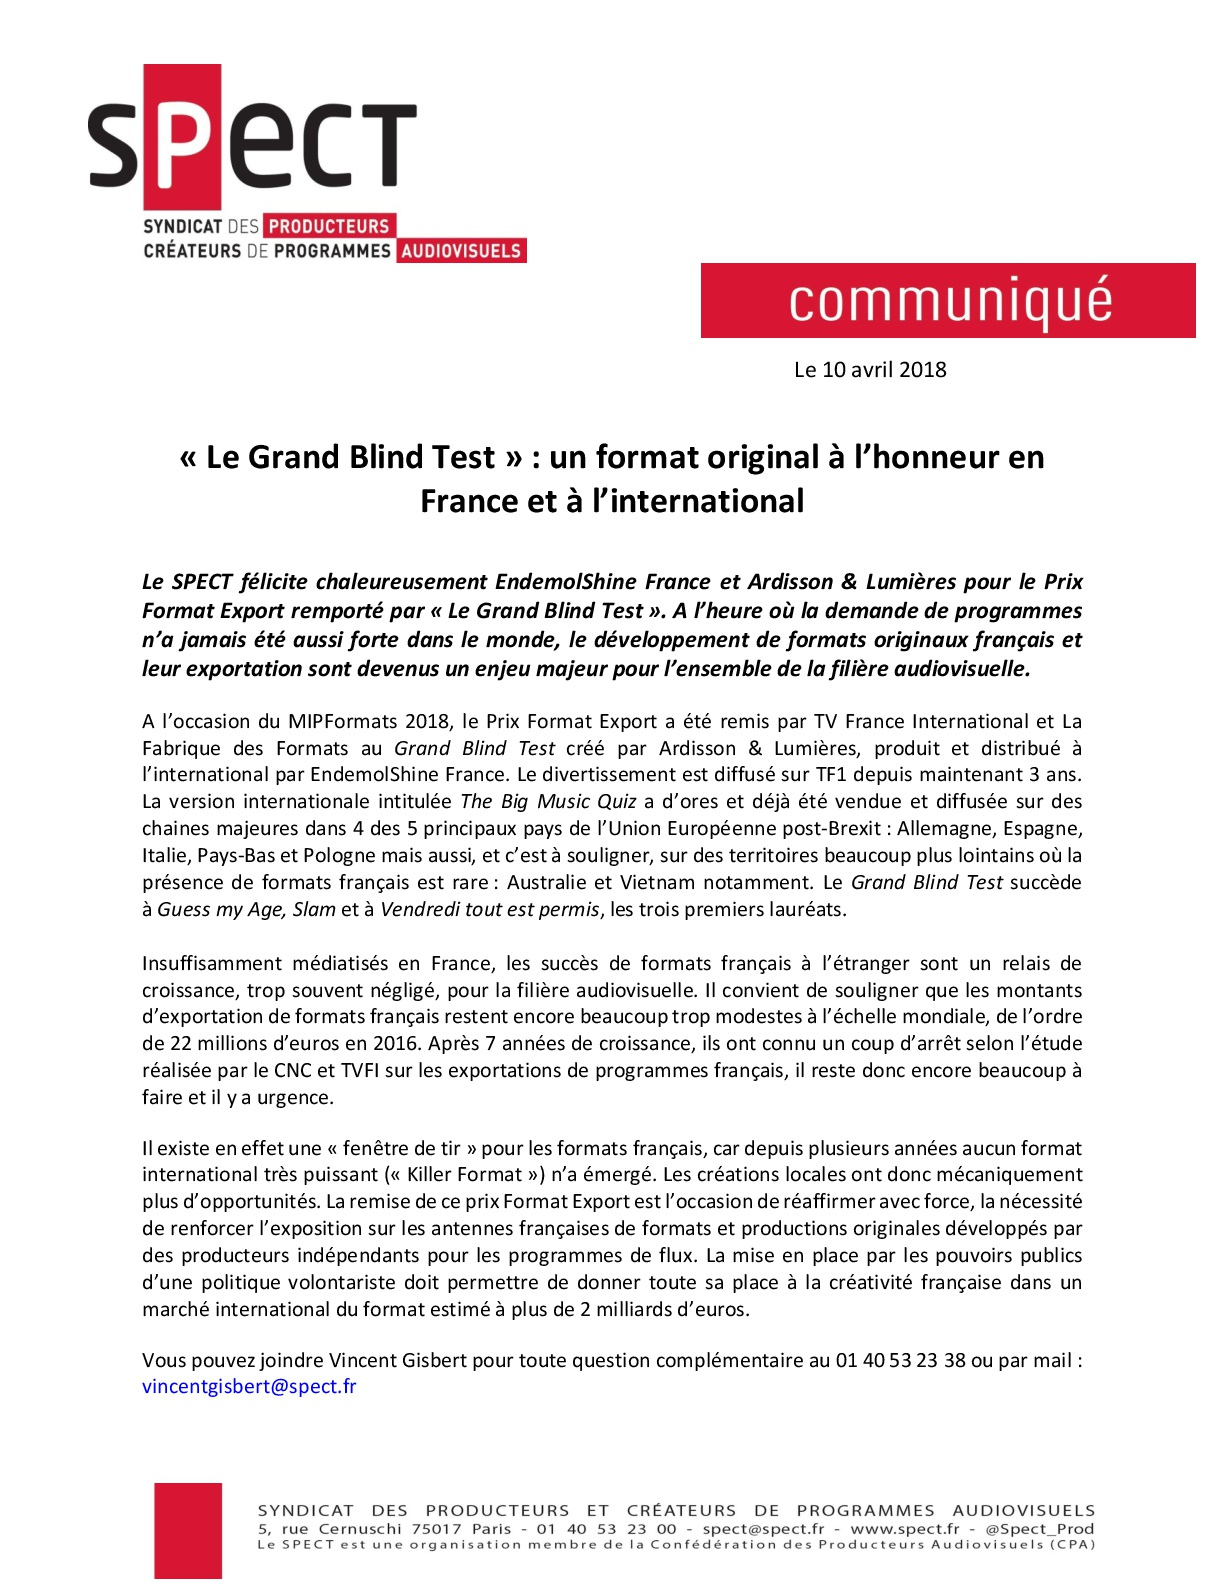 Communiqué de presse :  « Le Grand Blind Test » : un format original à l'honneur en France et à l'international